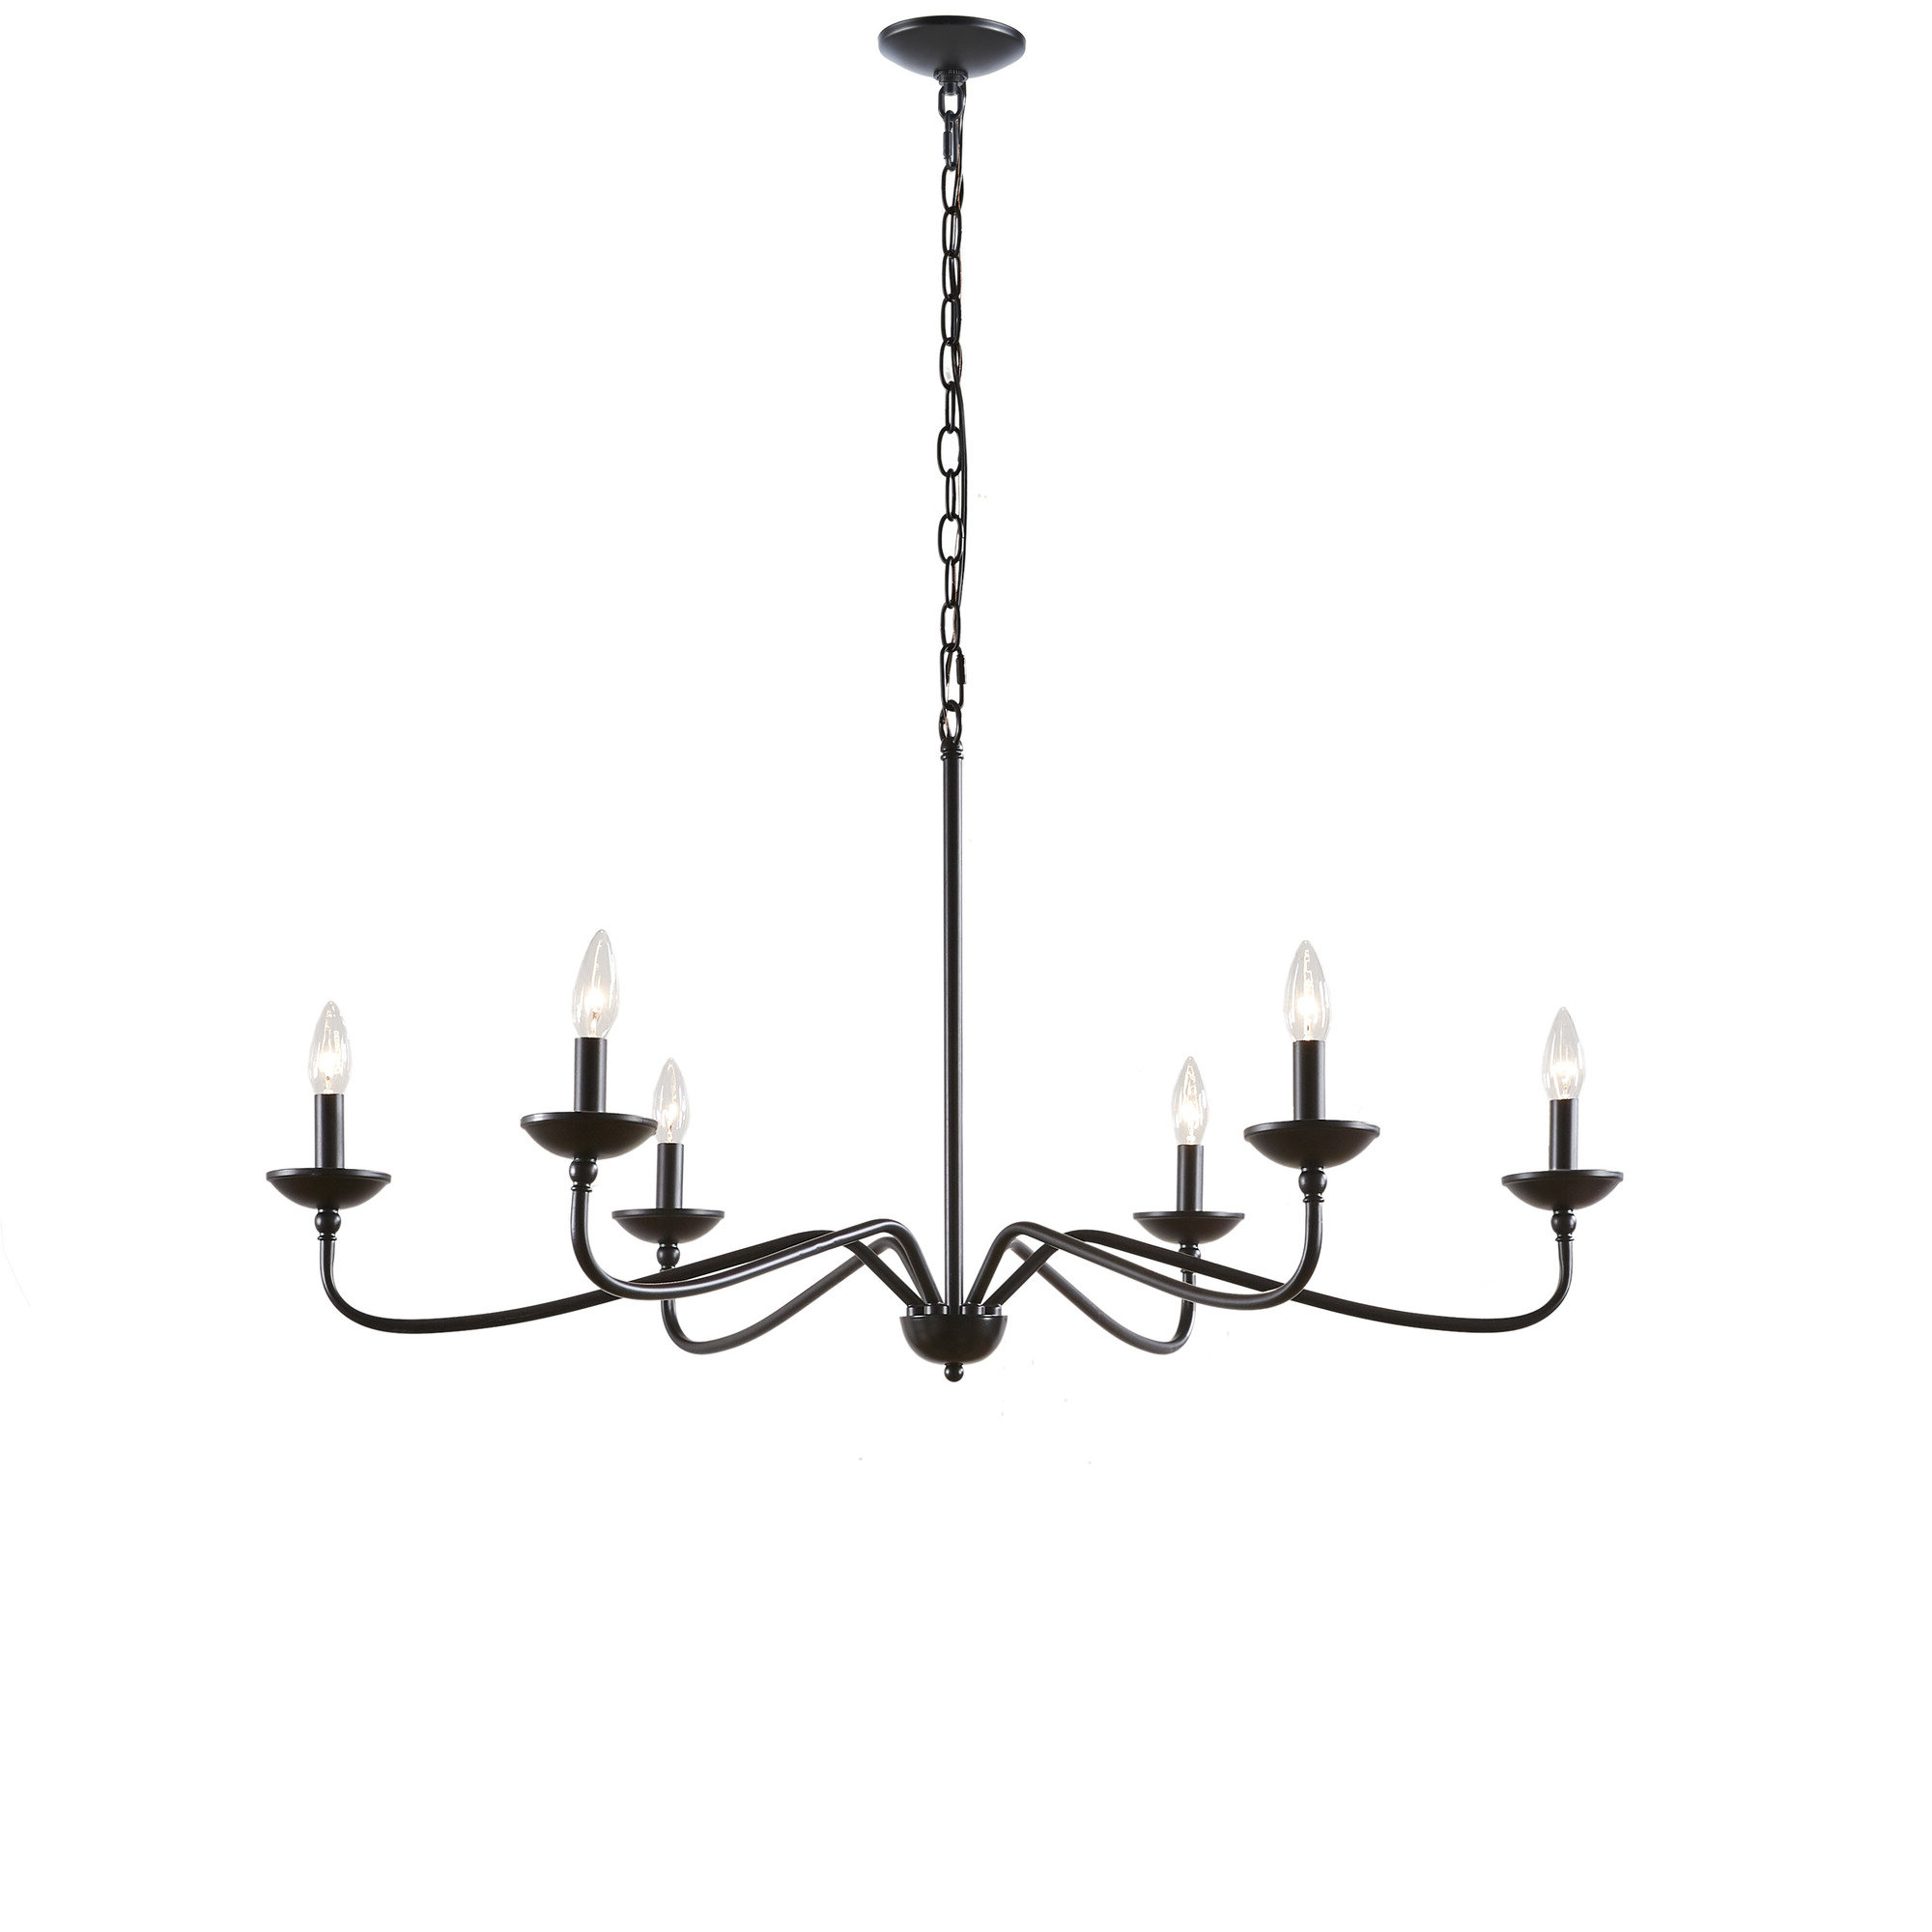 Hamza 6 Light Candle Style Chandeliers For Most Up To Date Scannell 6 Light Candle Style Chandelier (View 14 of 20)